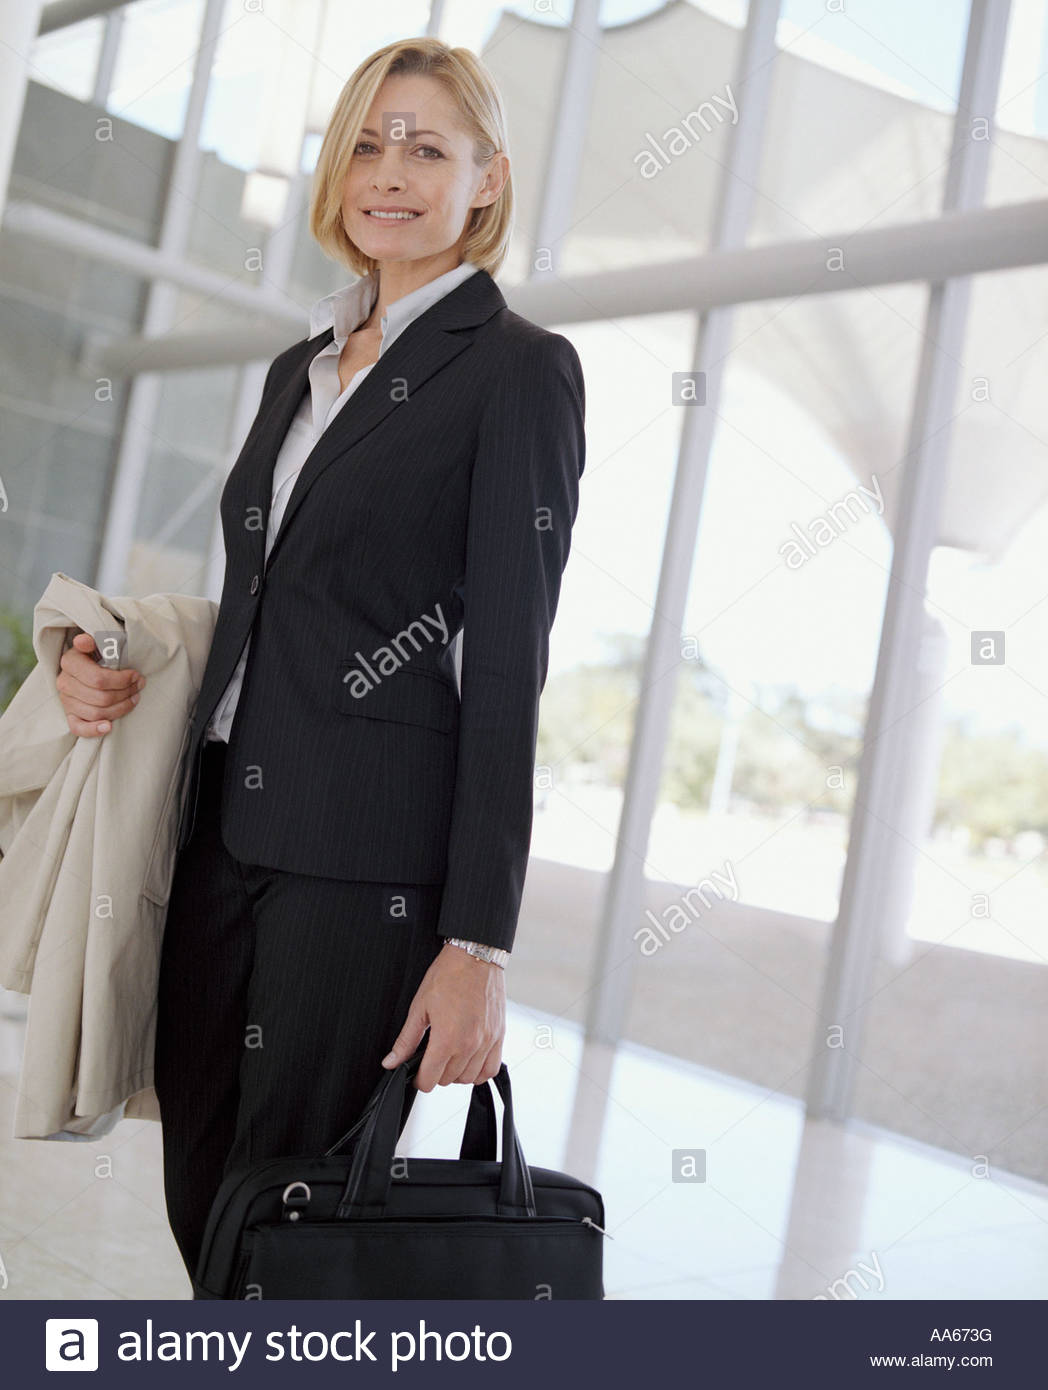 Businesswoman with briefcase and overcoat - Stock Image